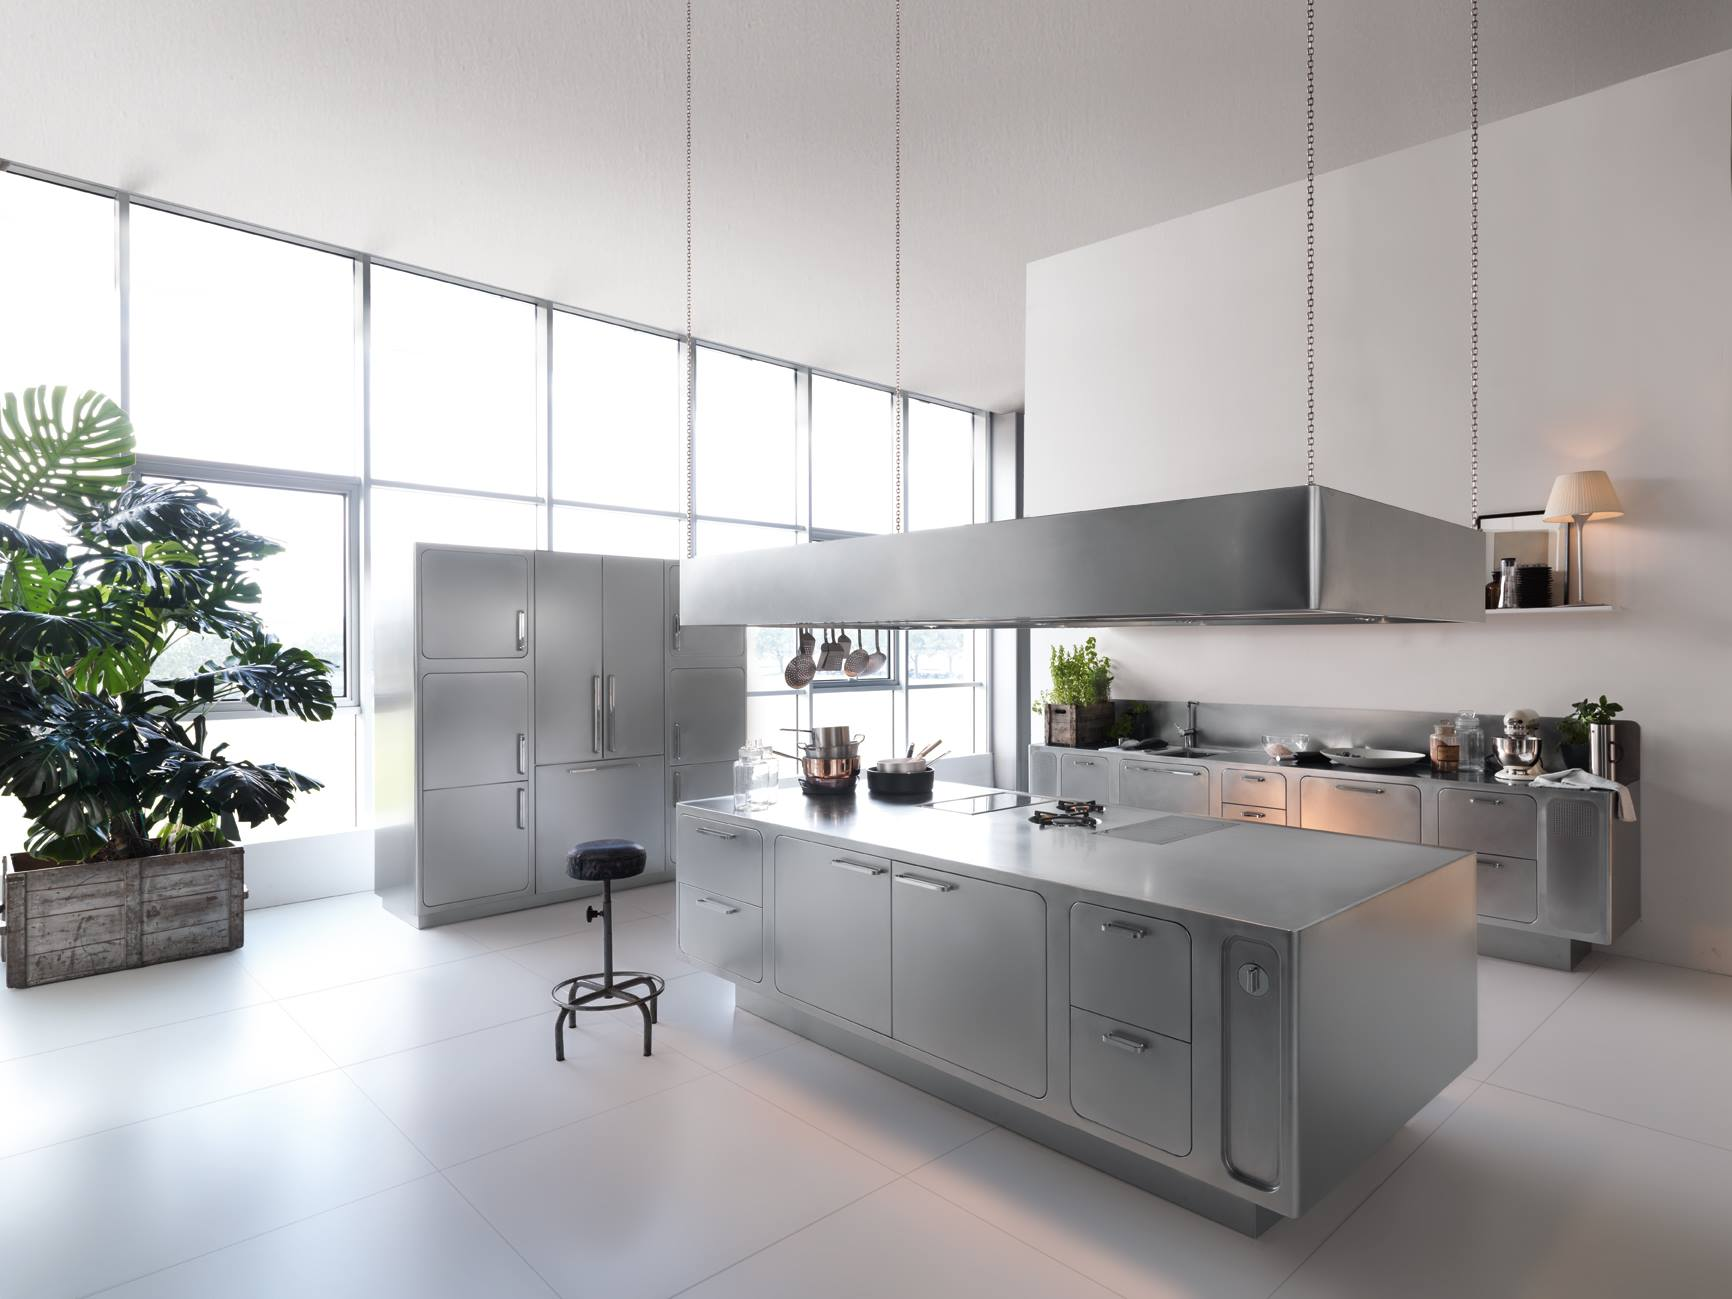 Italian kitchen design european kitchen Italian designs